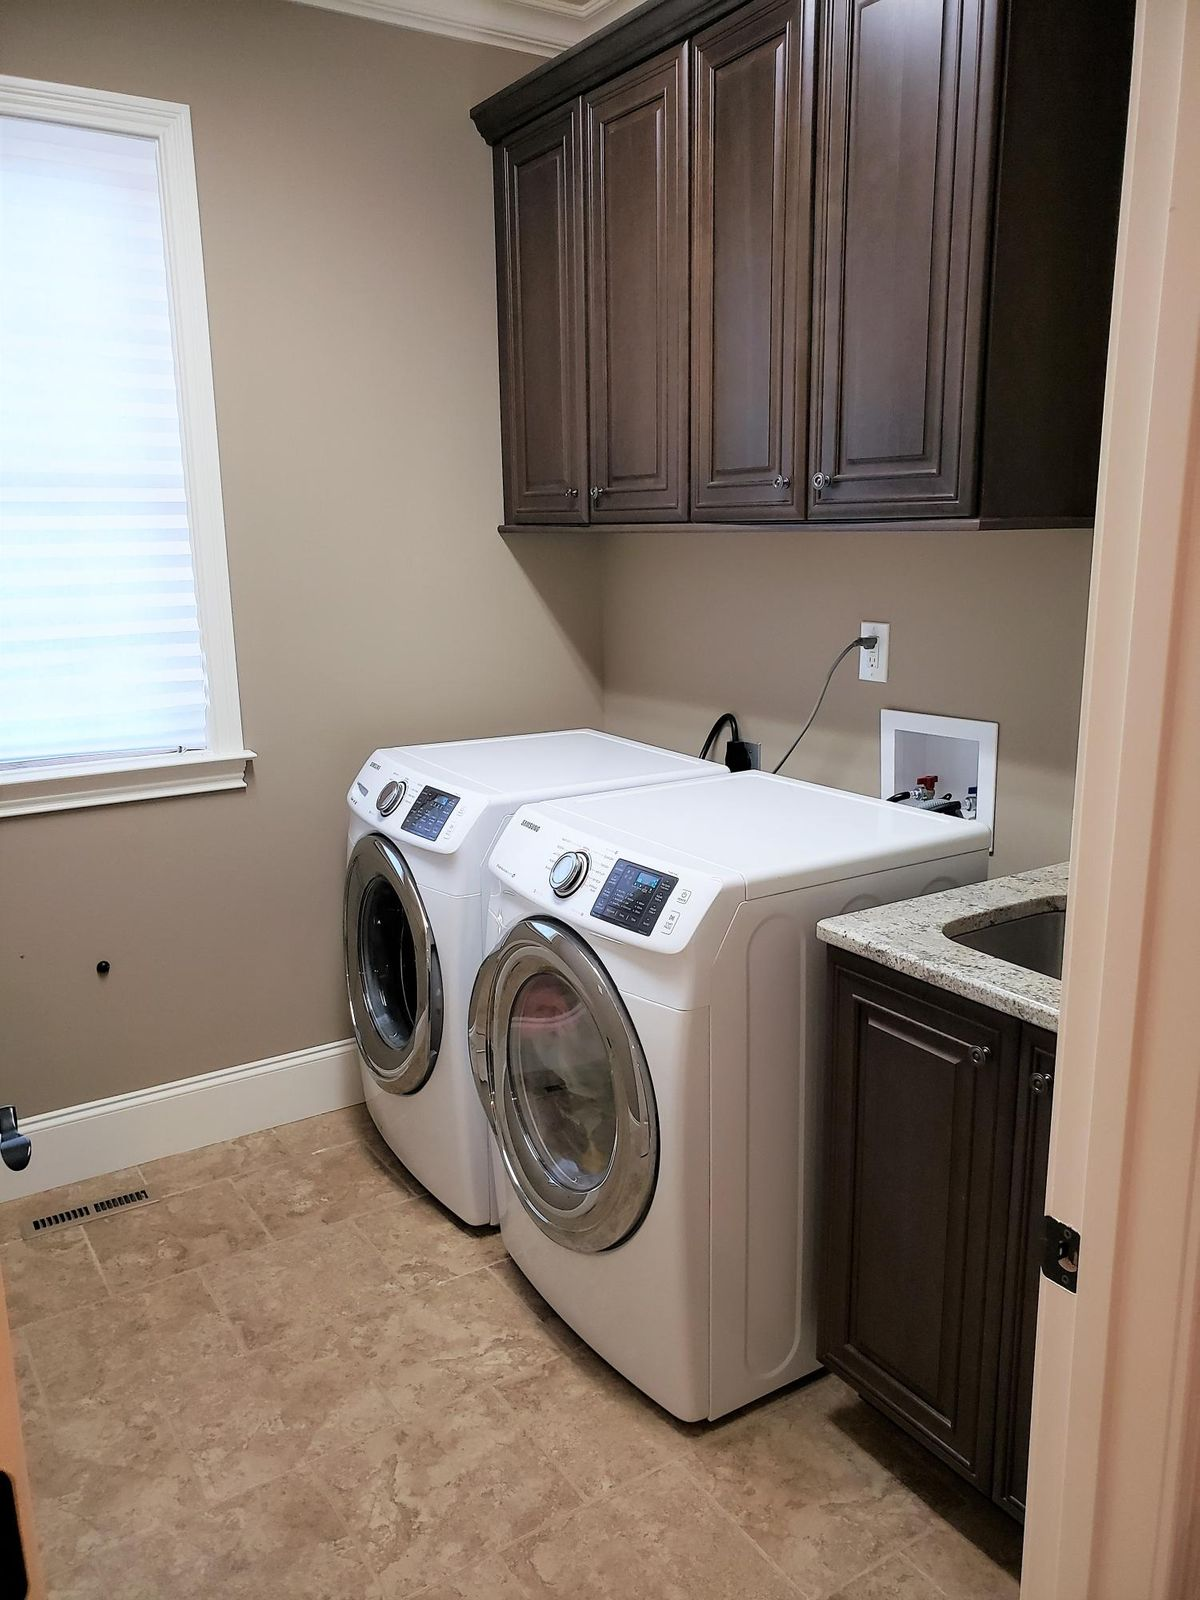 wendy siman - 13 laundry room